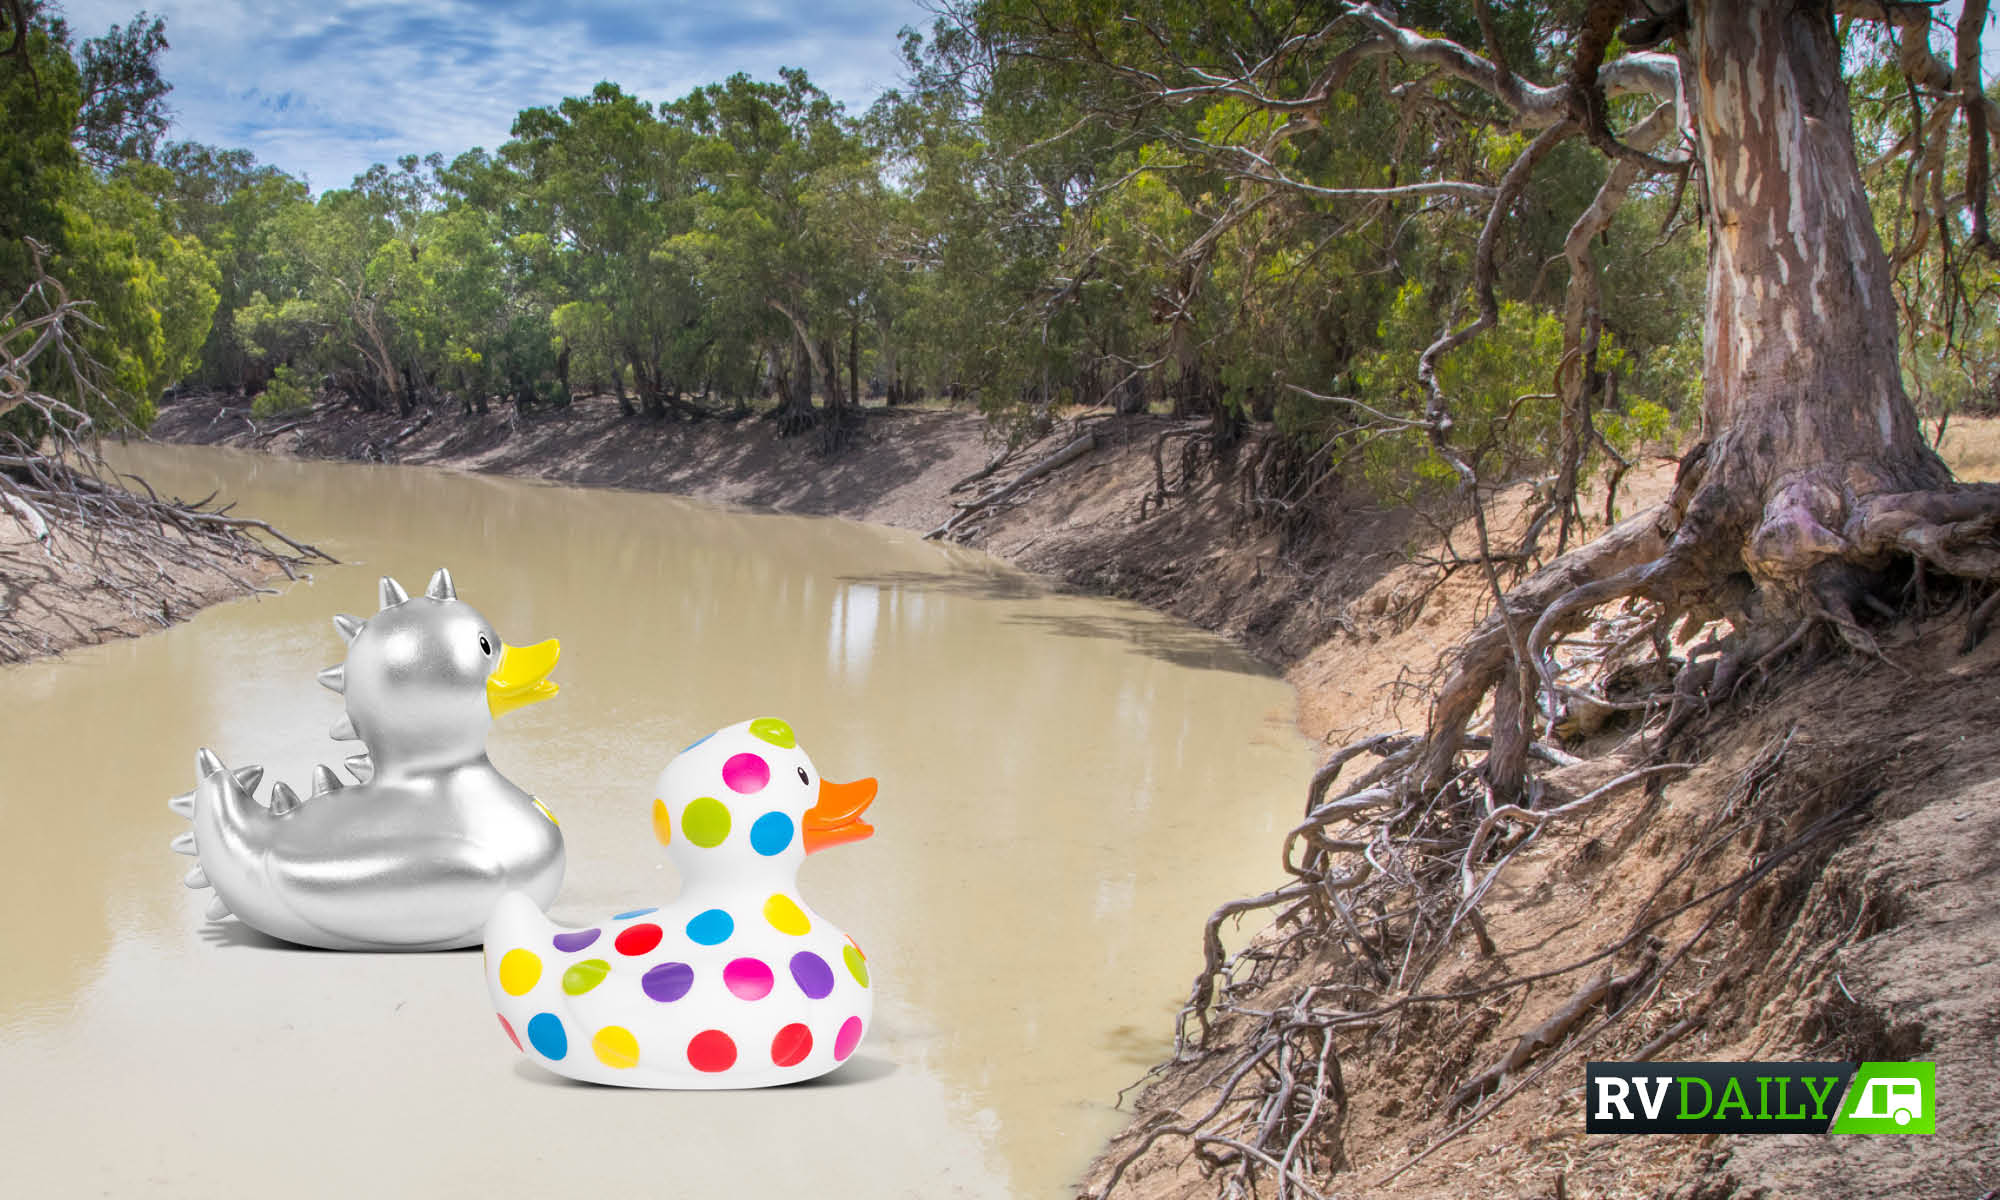 MURRAY-DARLING: WE LITERALLY GIVE TWO DUCKS ABOUT OUR FAMOUS WATERWAYS